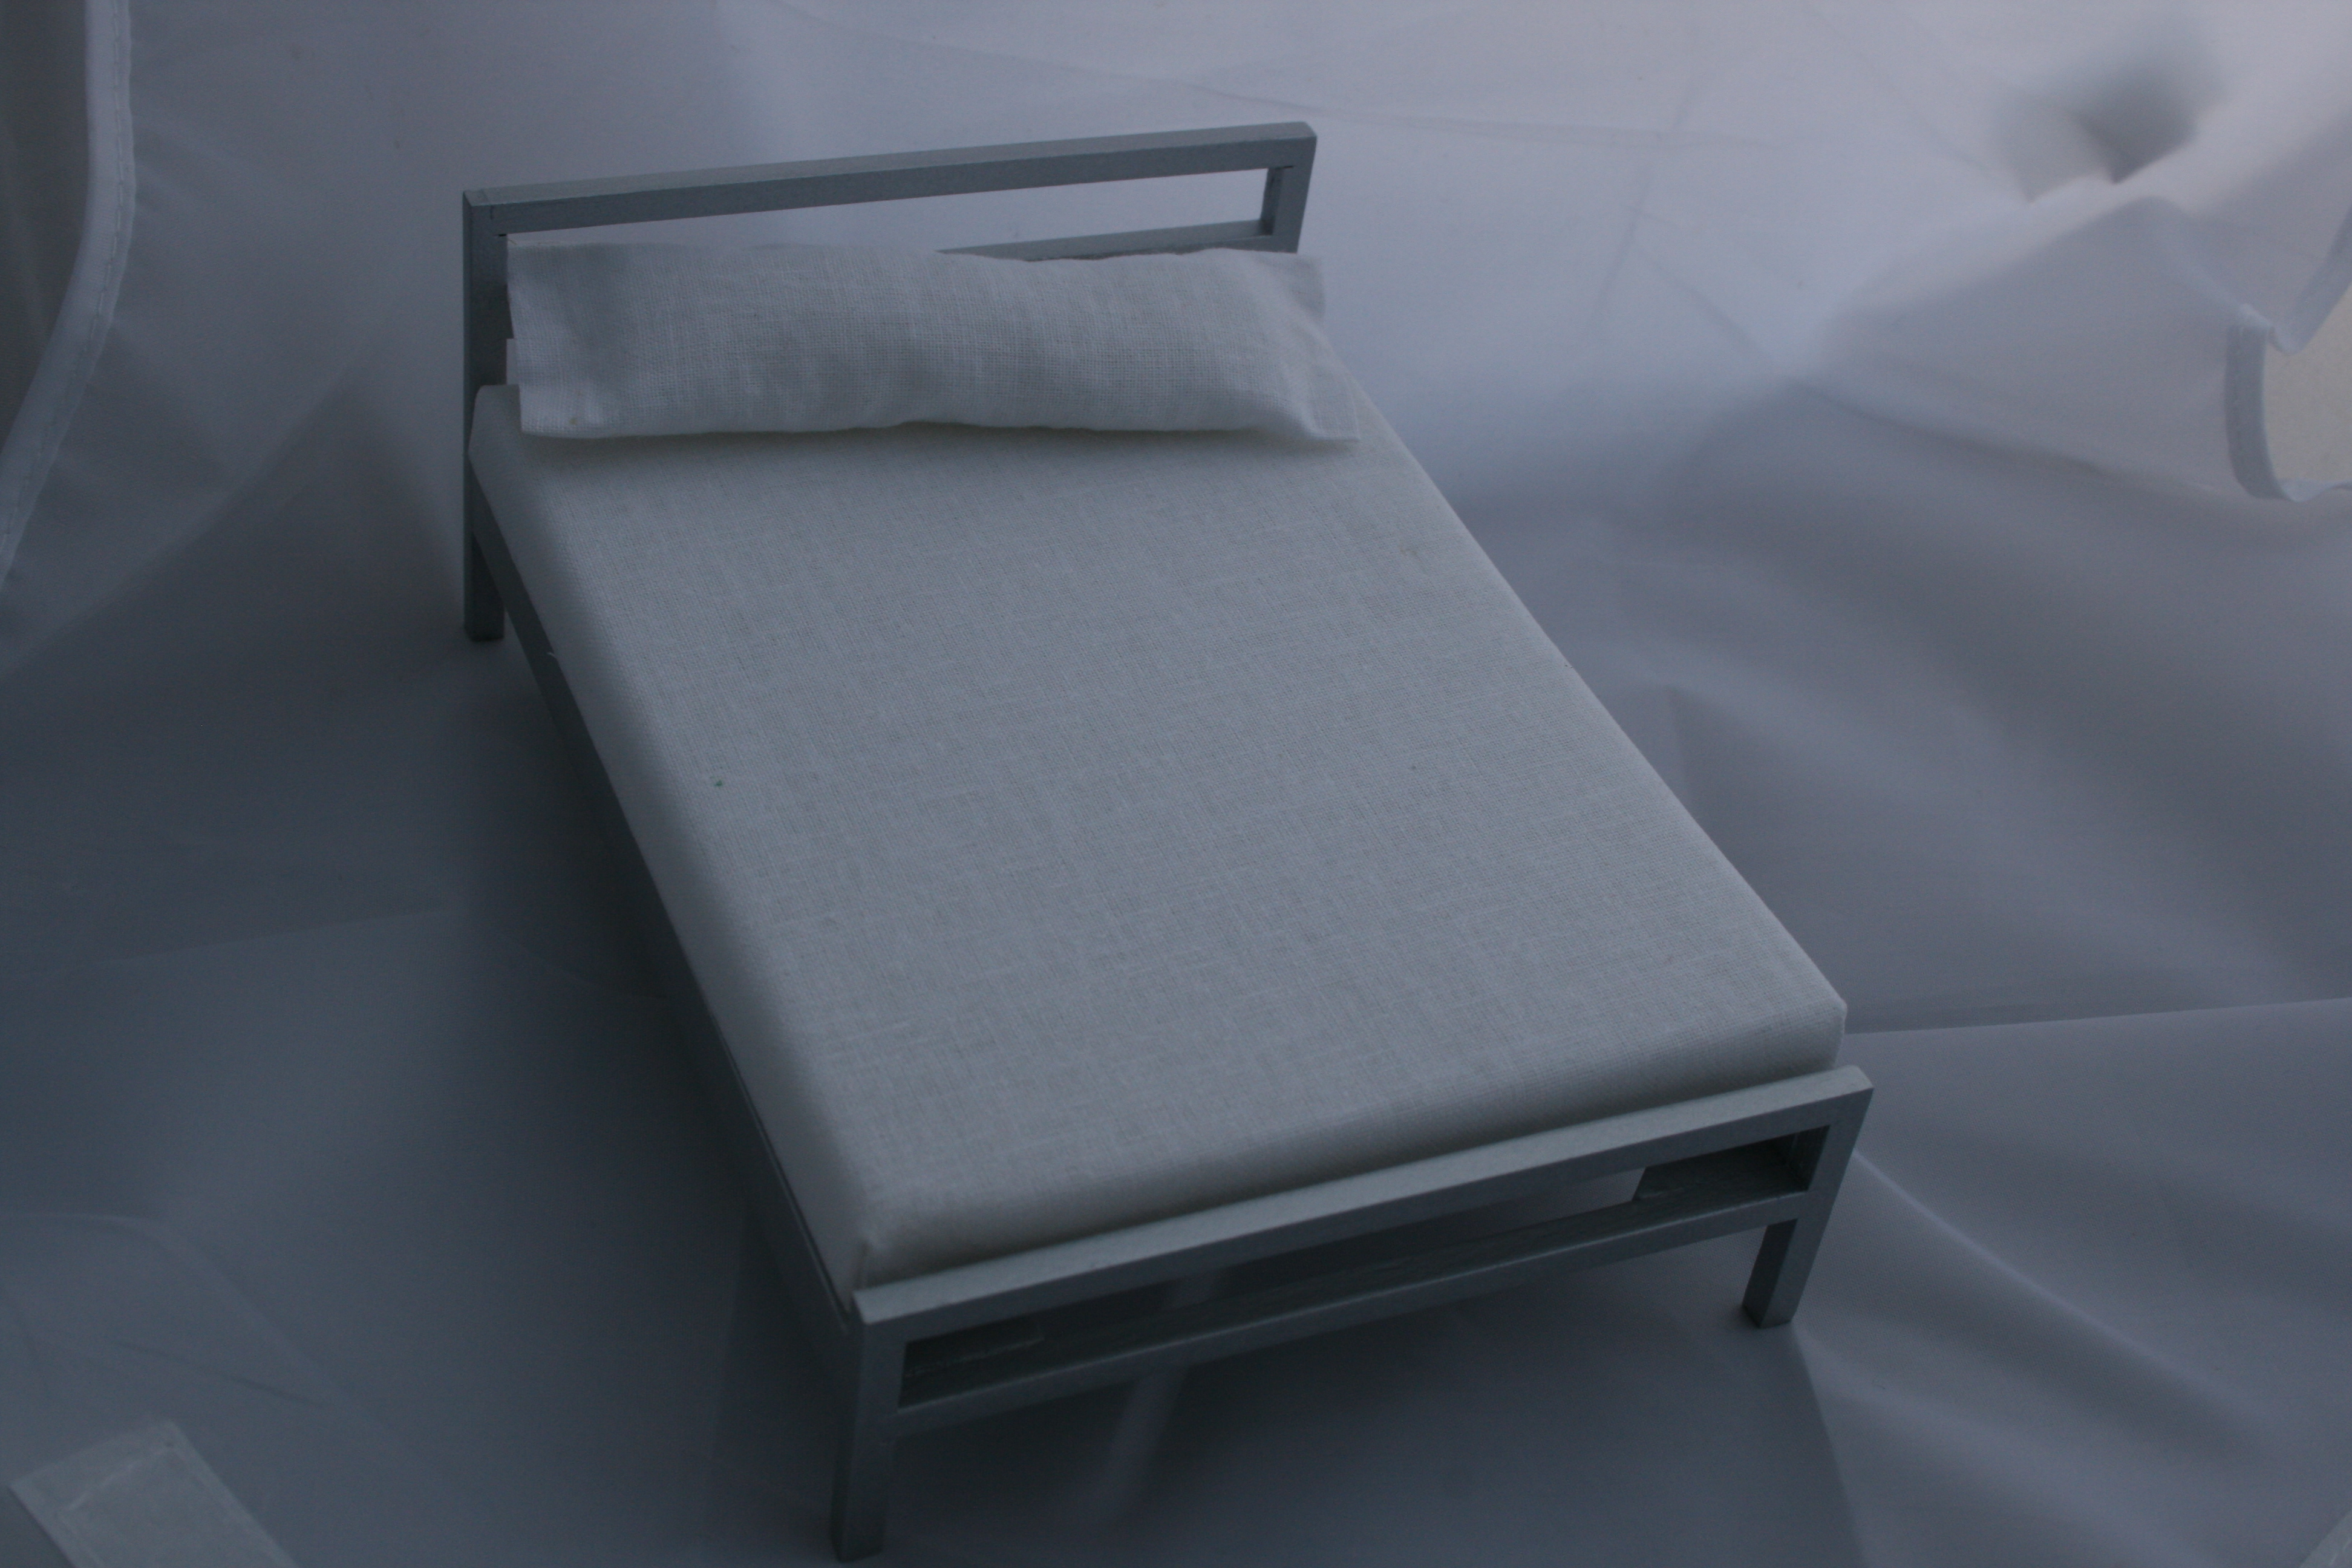 'Chrome' Double bed